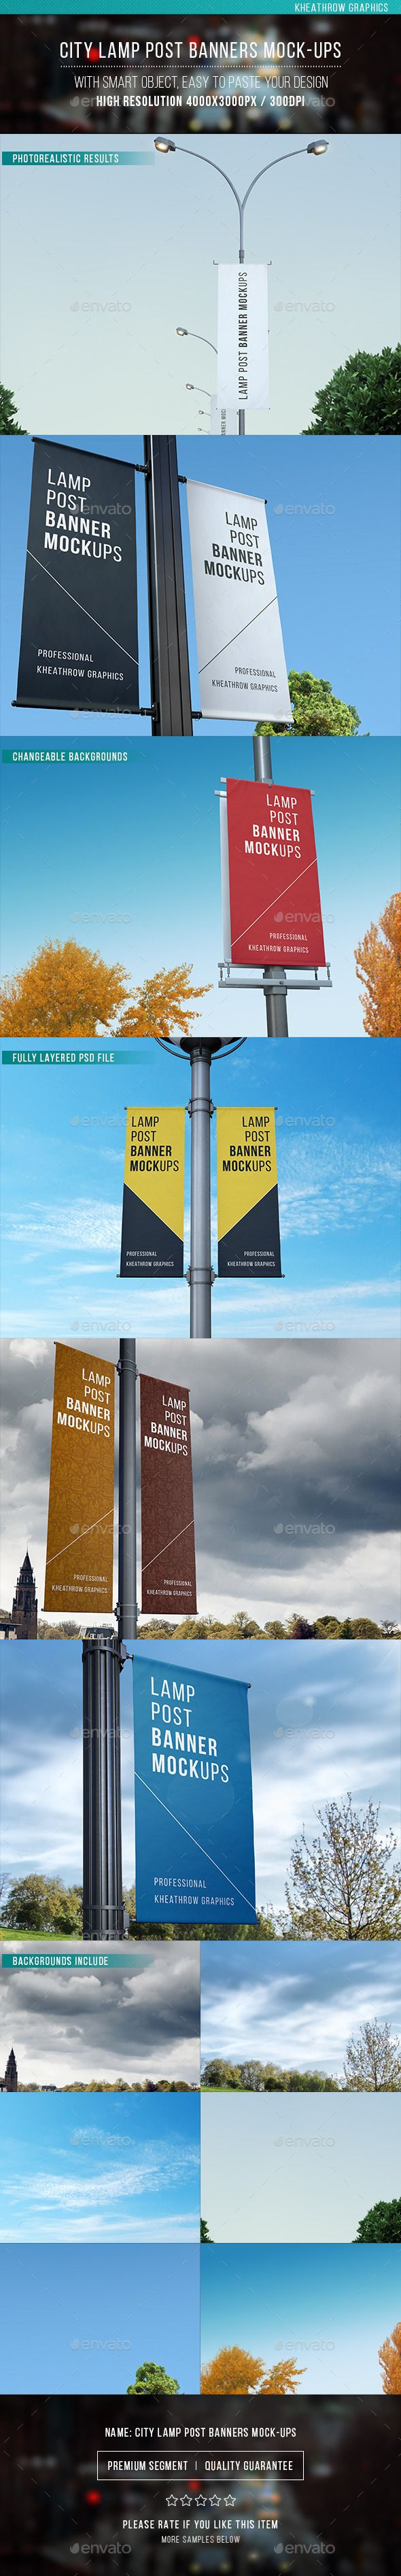 City Lamp Post Banners Mock-ups  PSD Template • Download ➝ https://graphicriver.net/item/city-lamp-post-banners-mockups/12806924?ref=pxcr